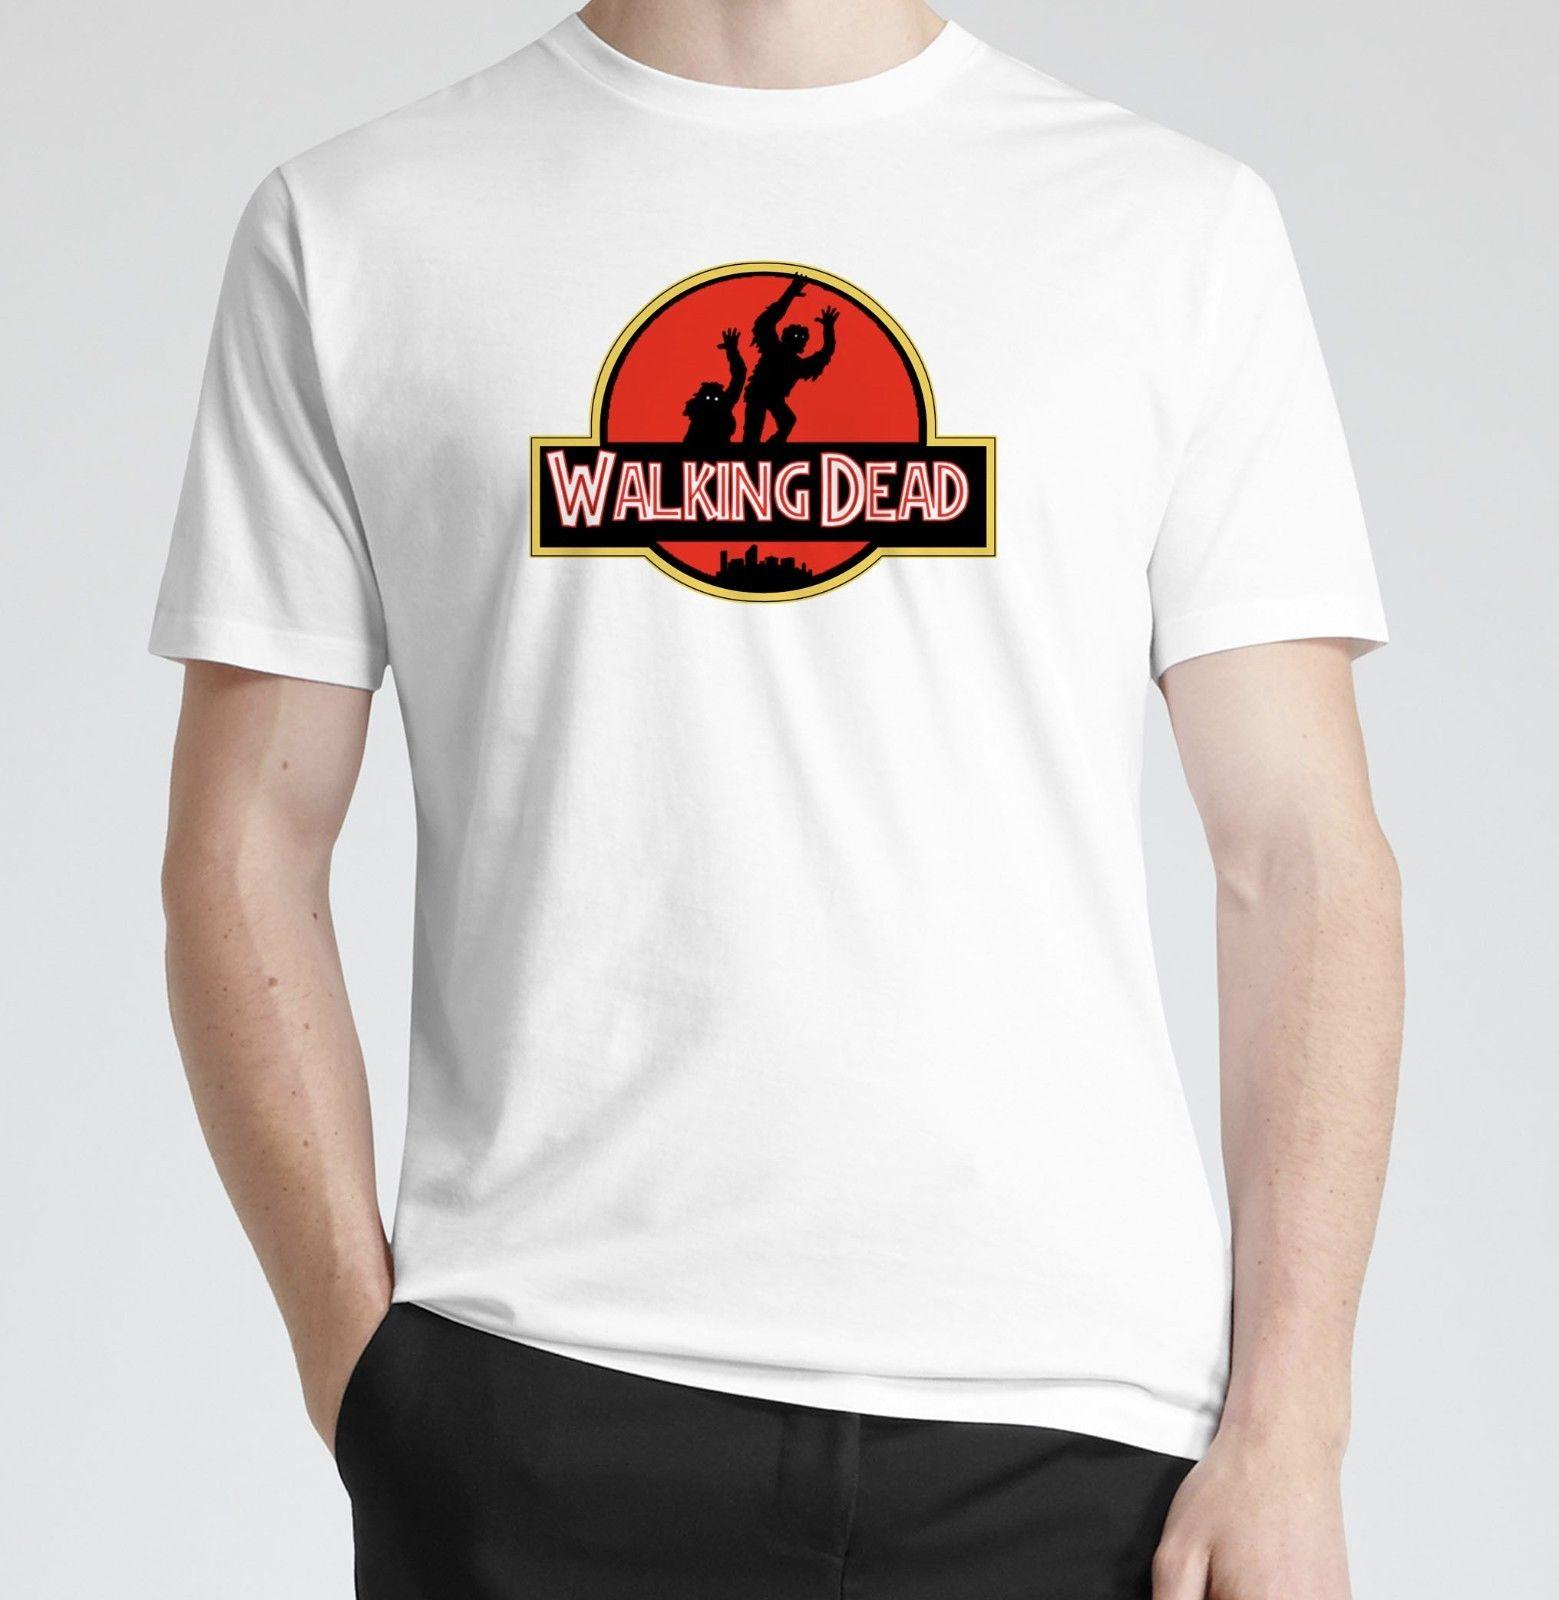 Acheter The Walking Dead Jurassic Park T Shirt T Shirt Tee Shirt